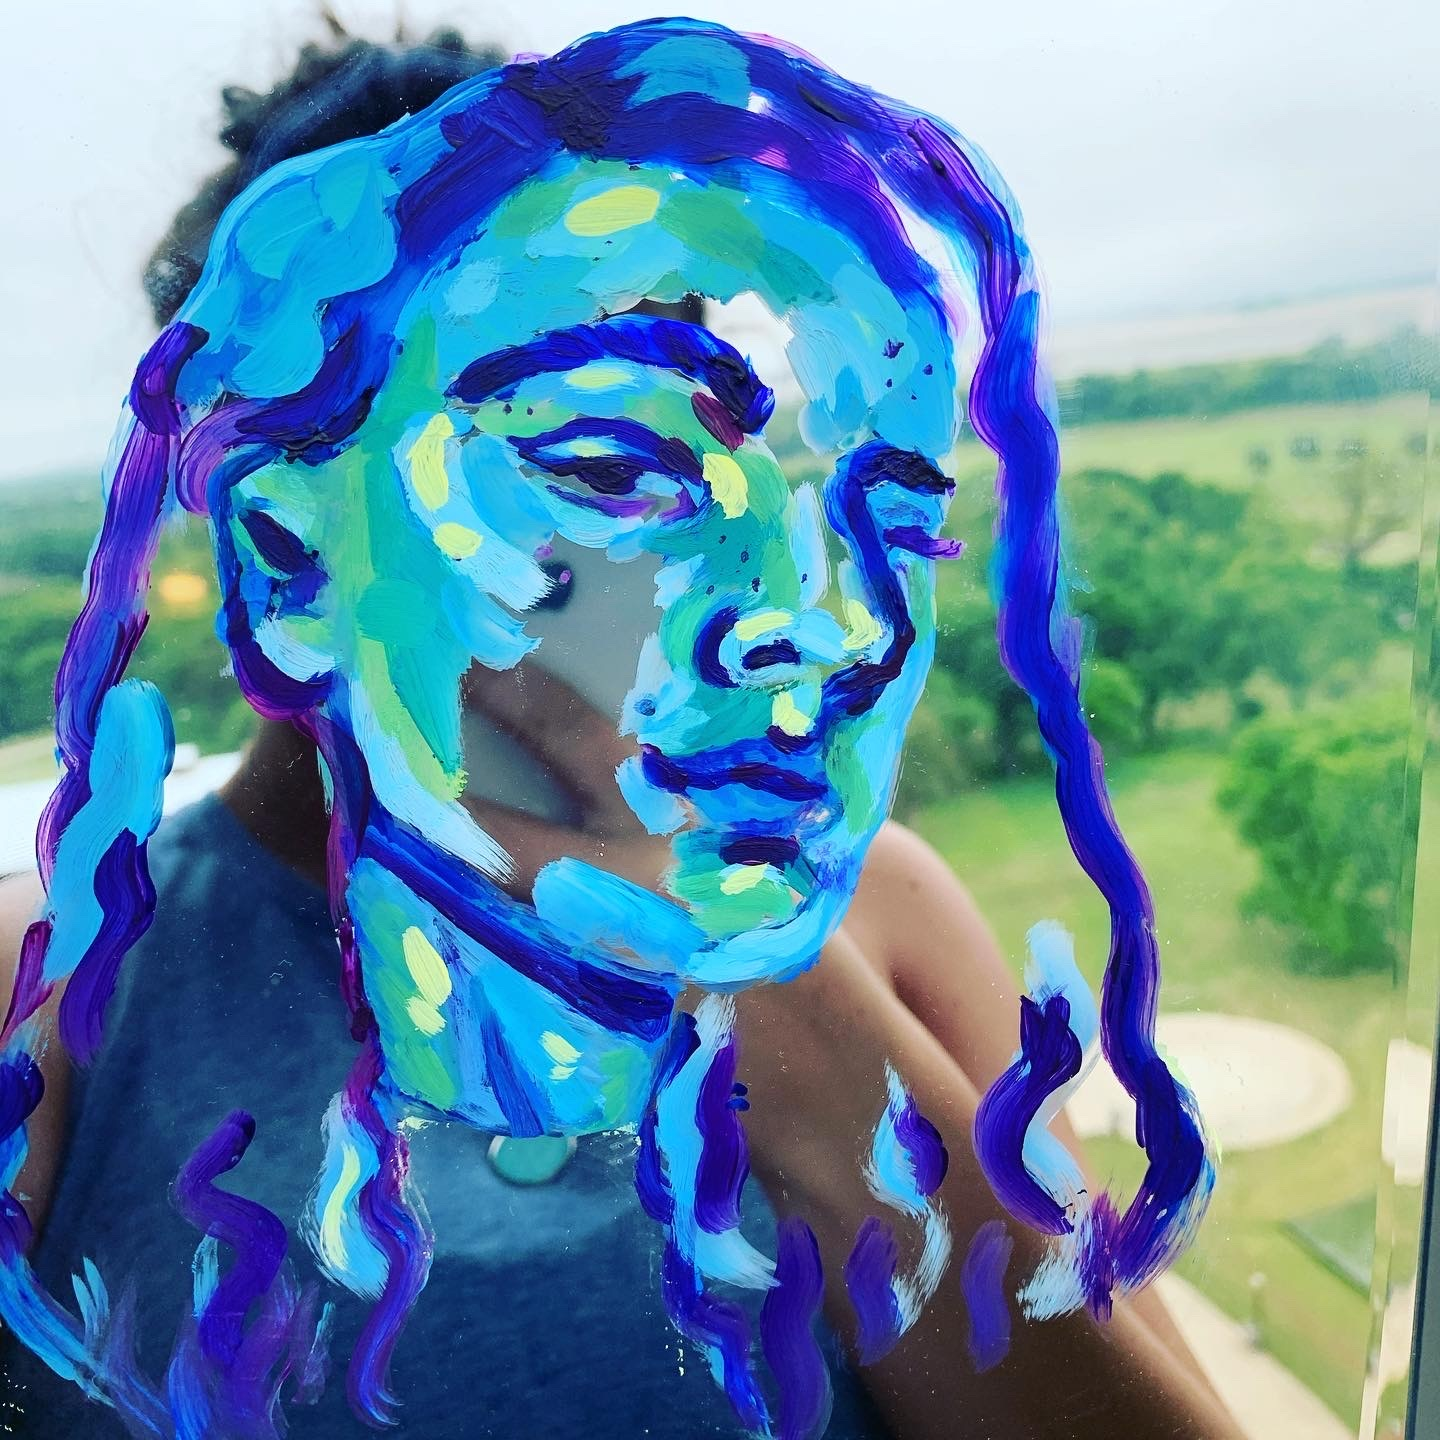 Photograph of a young woman with fields in the background and two-toned blue drawing with a slightly different look over her face